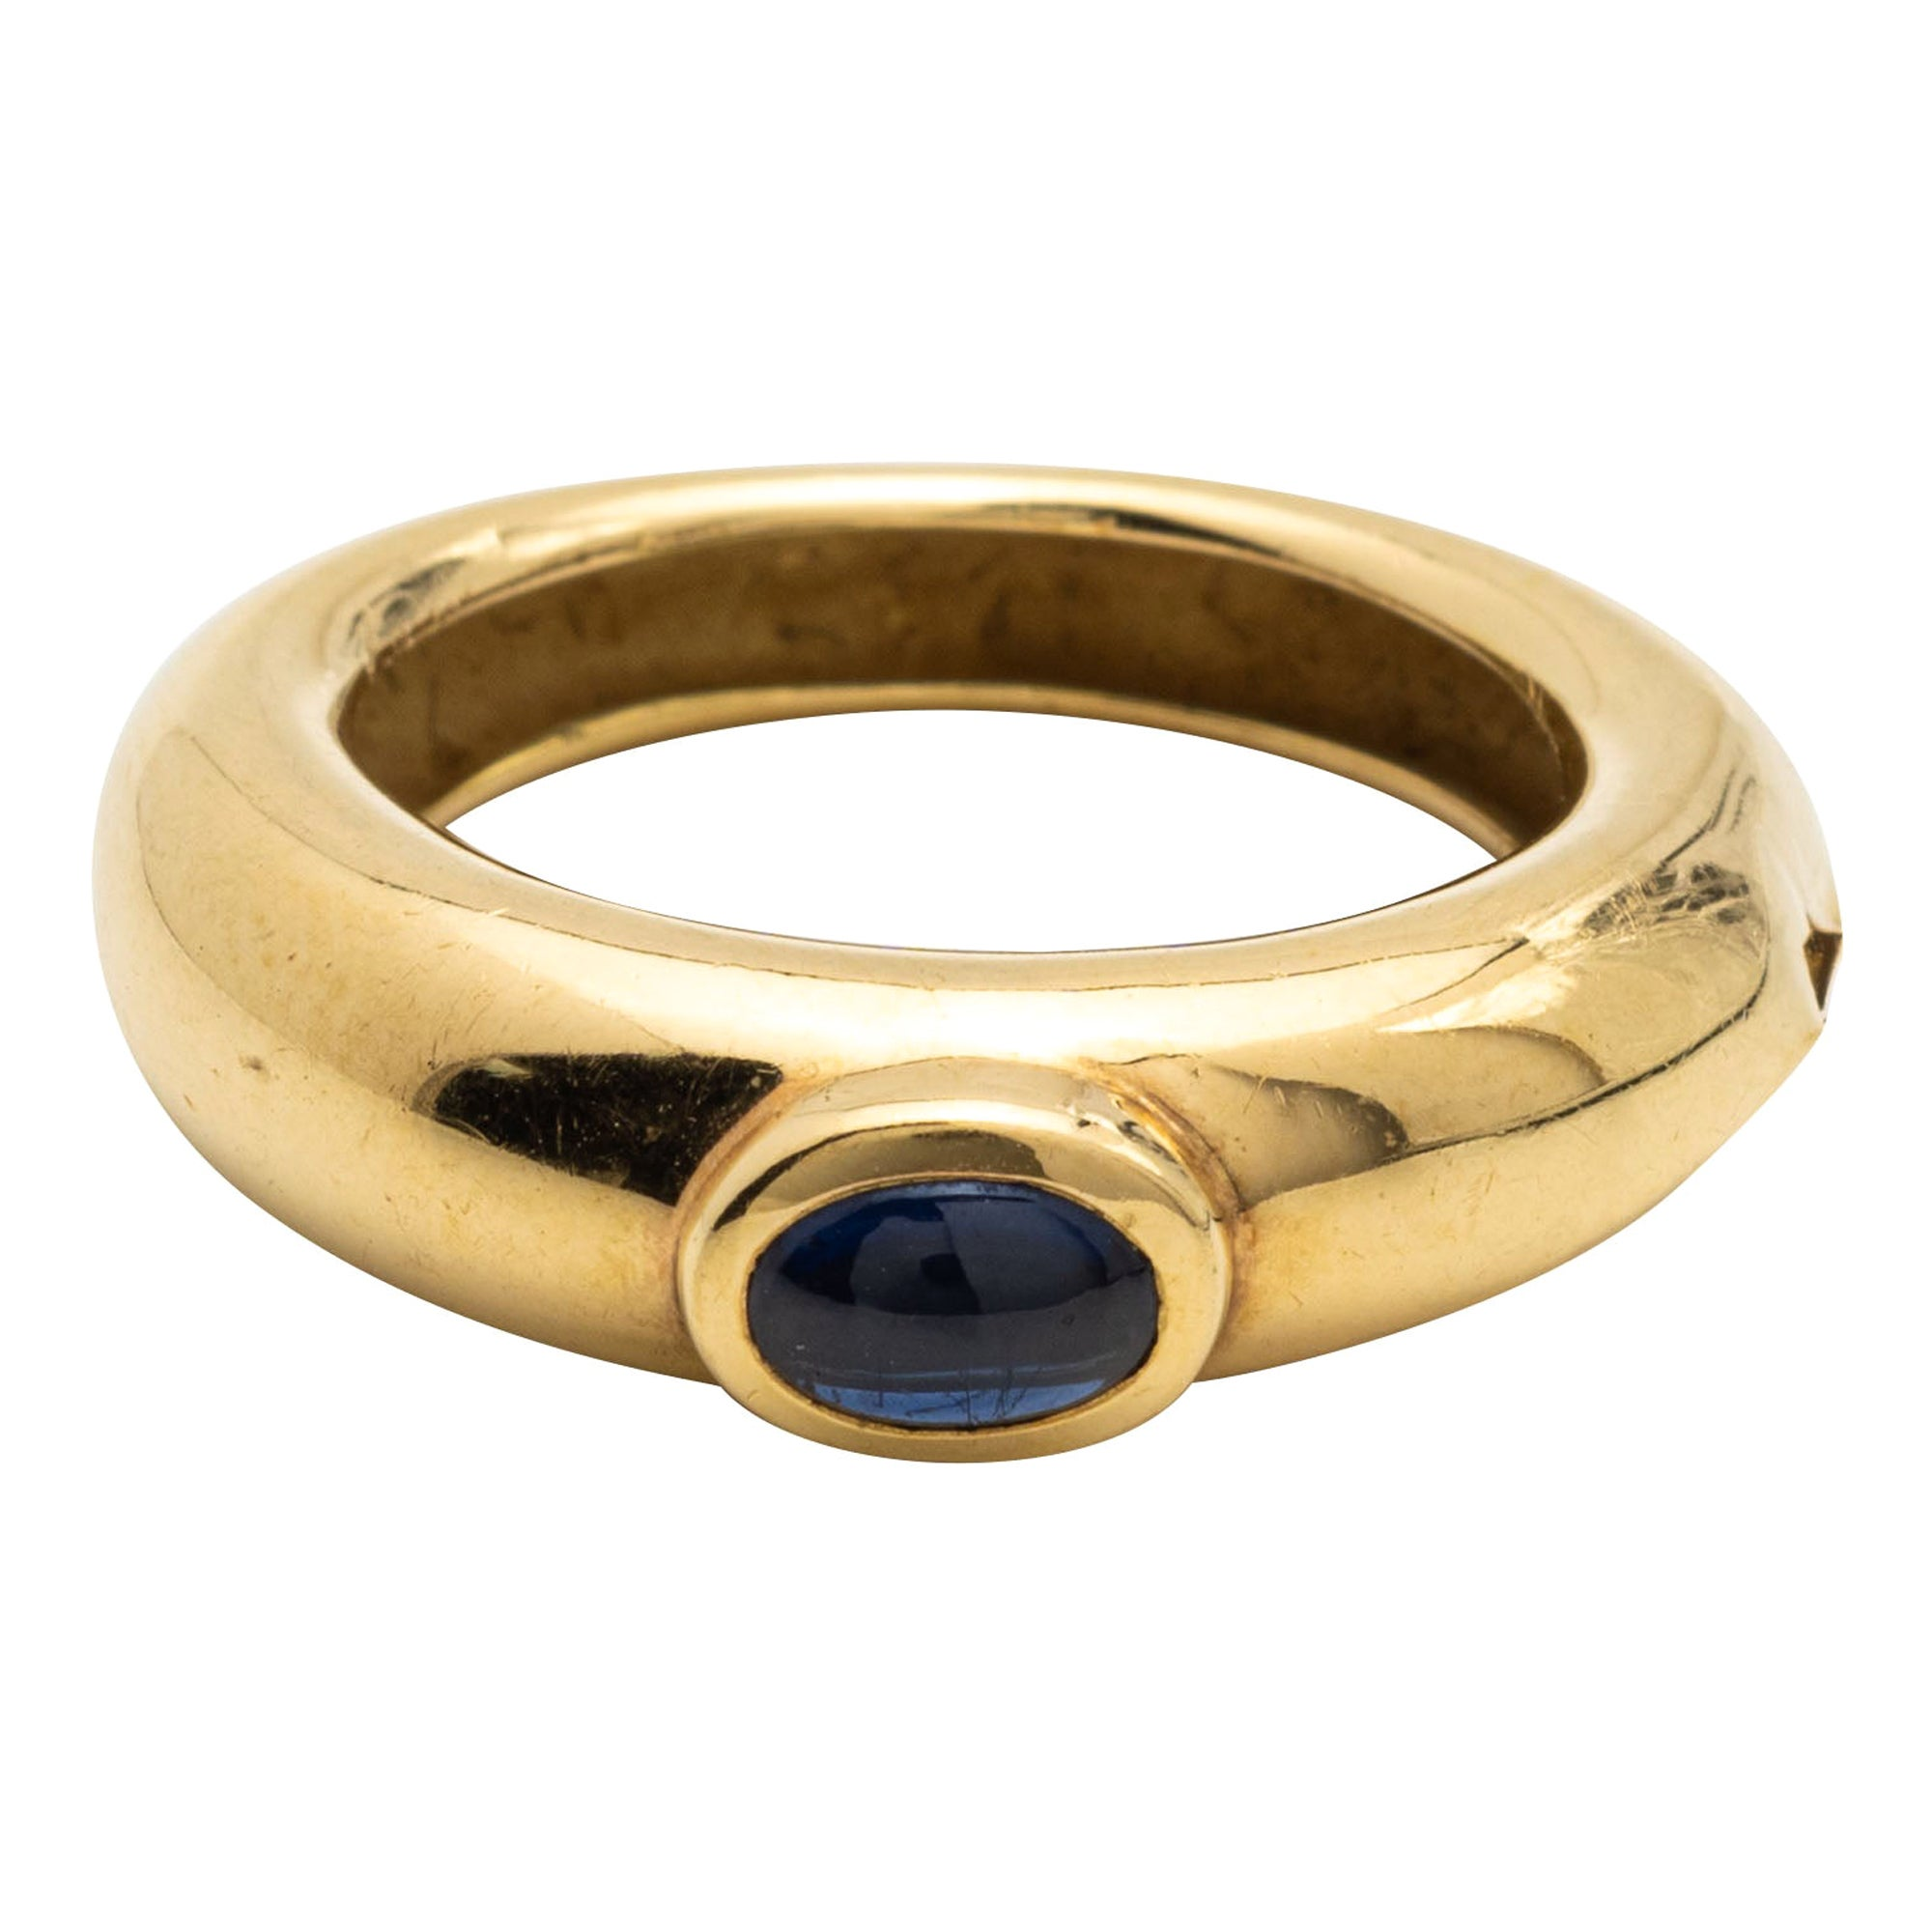 Chaumet, Sapphire and Gold Ring